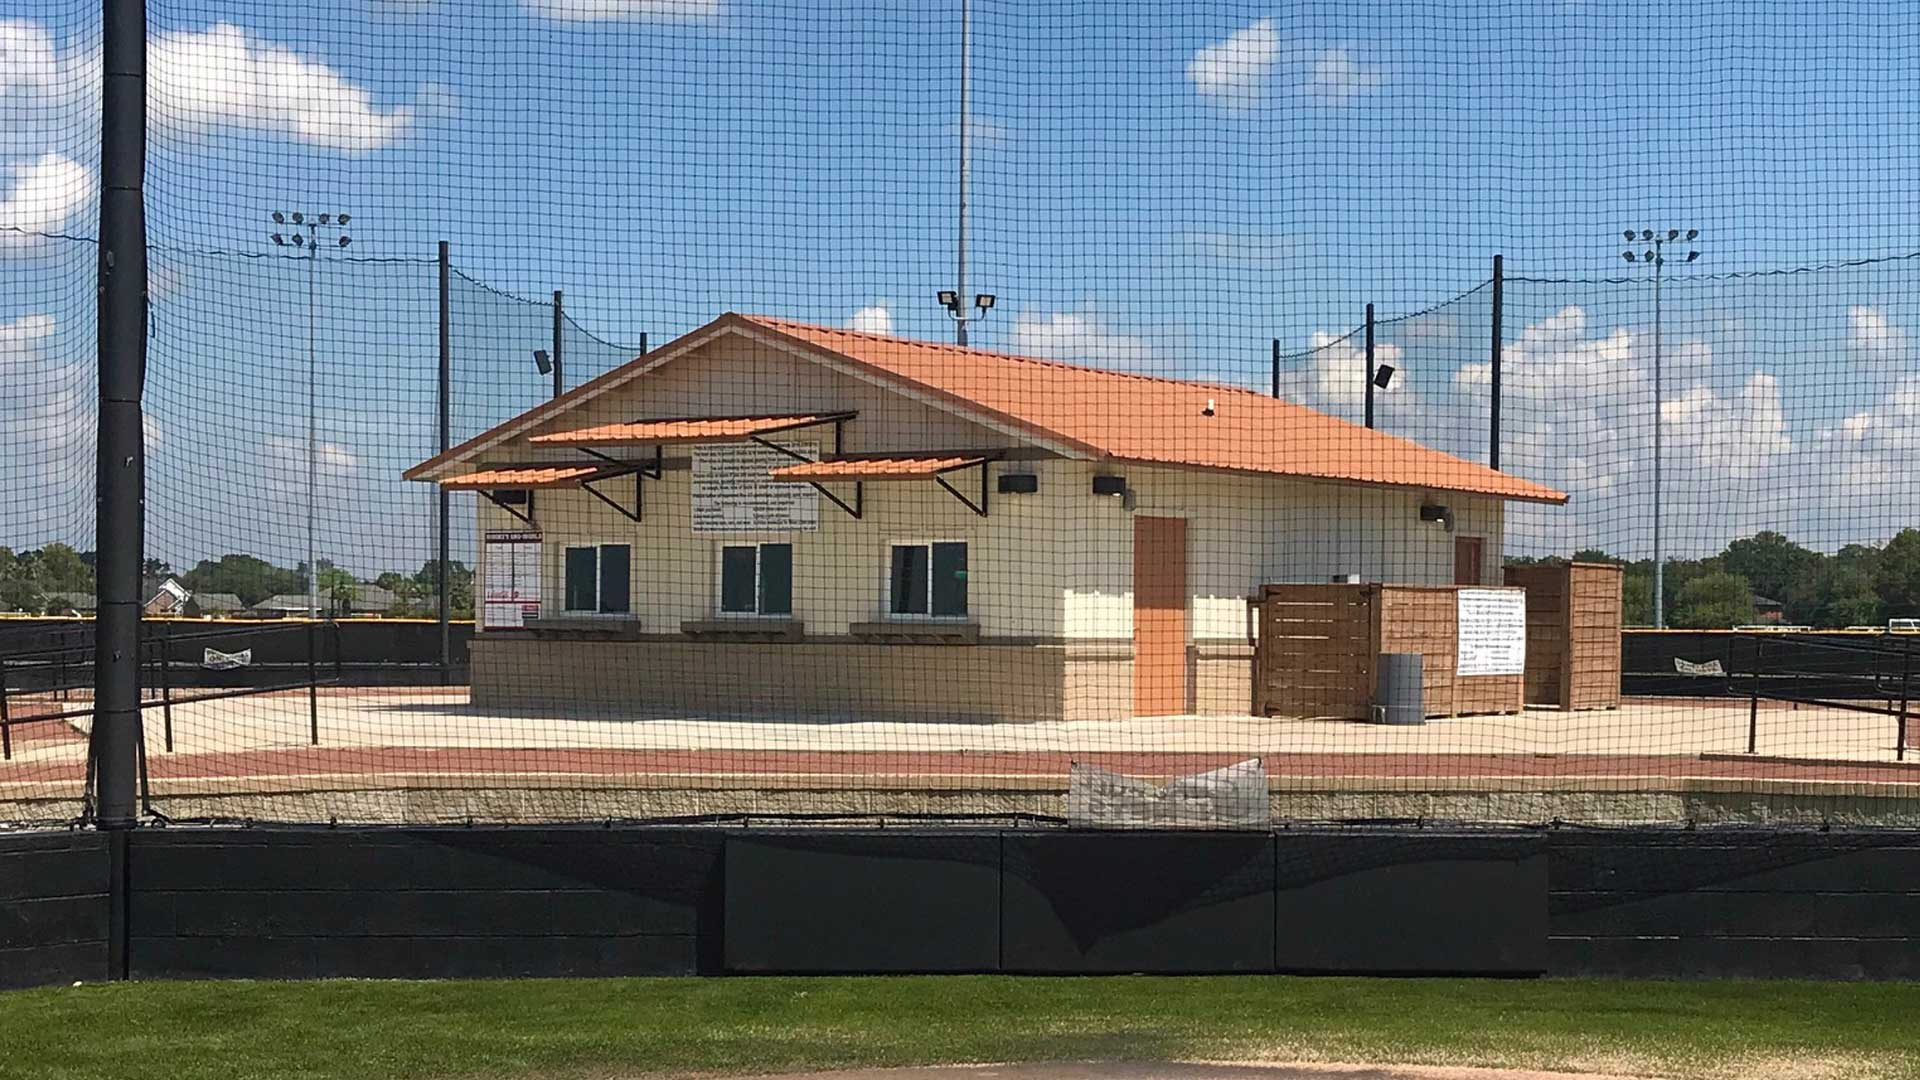 Photo of concessions stand and restrooms at the softball complex.